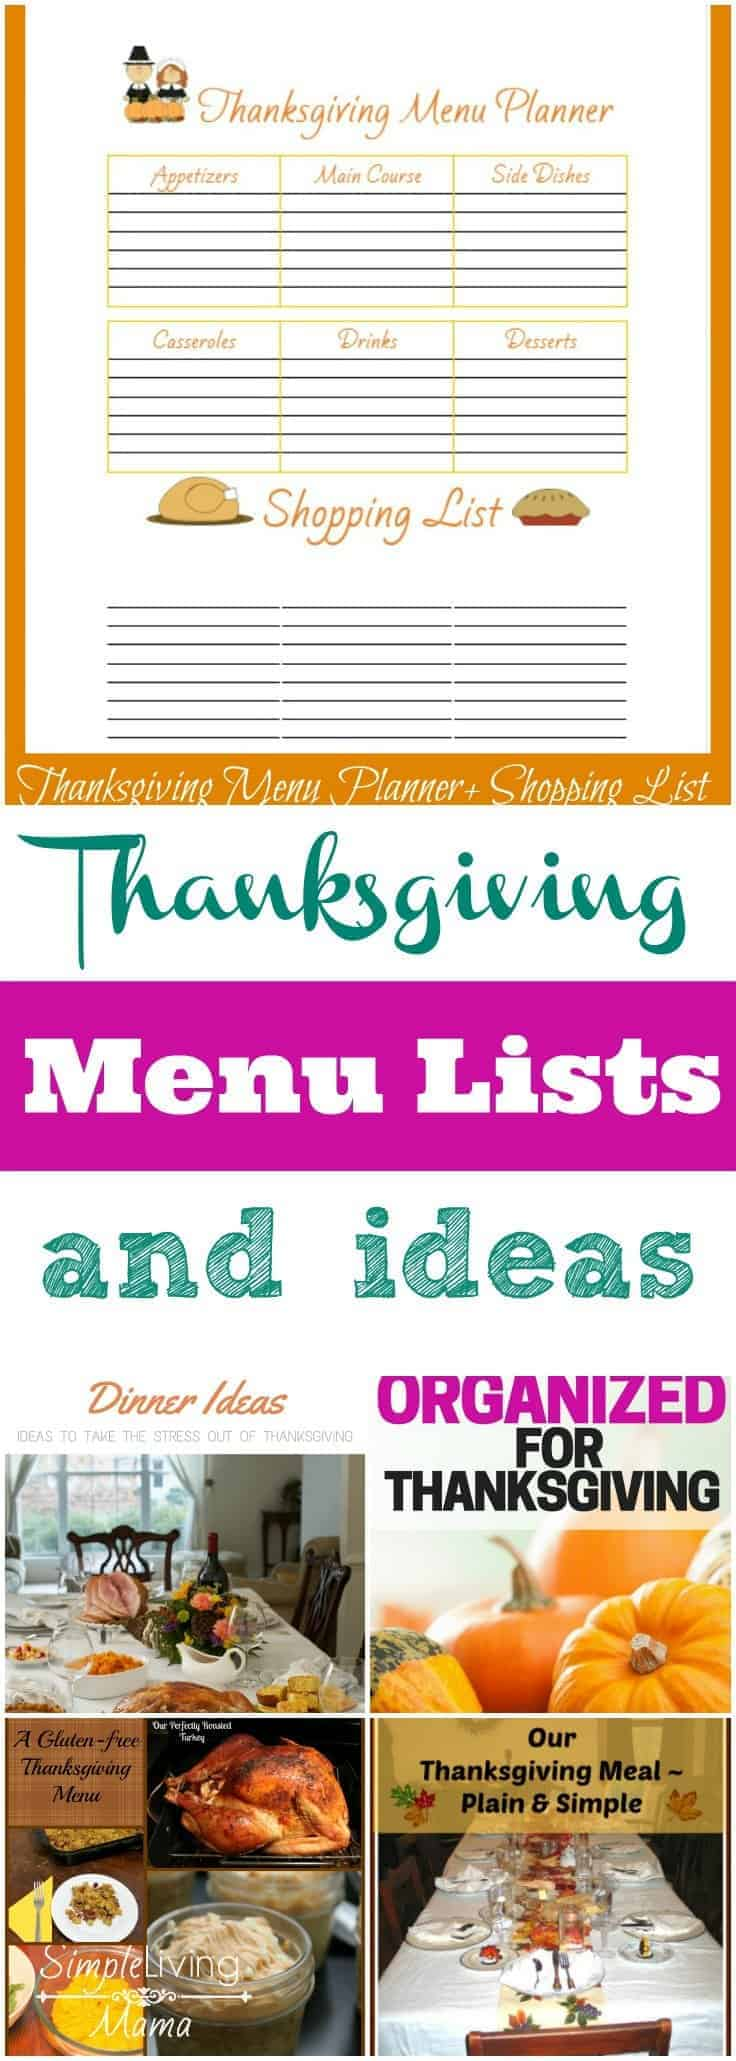 Thasnksgiving menu lists and ideas for an amazing Thanksgiving meal. Whether it's your first Thanksgiving, or your hundredth, you will find great ideas!